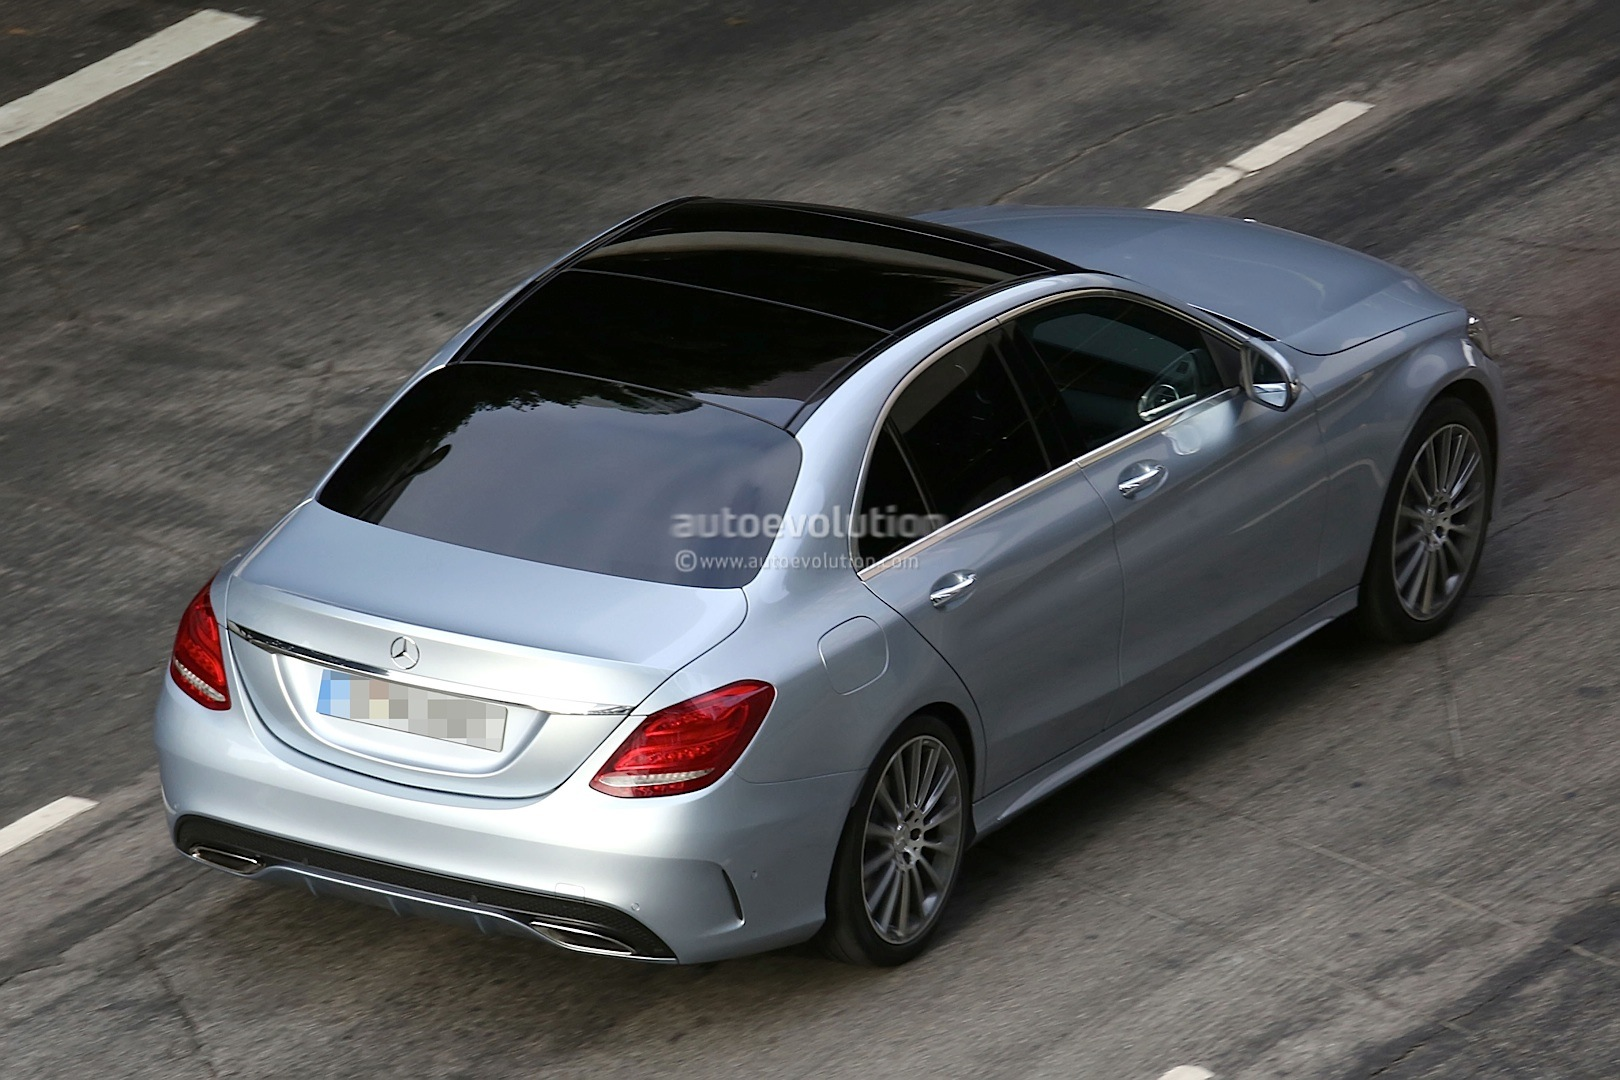 2015 mercedes benz c 220 bluetec w205 vs 2014 c 220 cdi for The latest mercedes benz